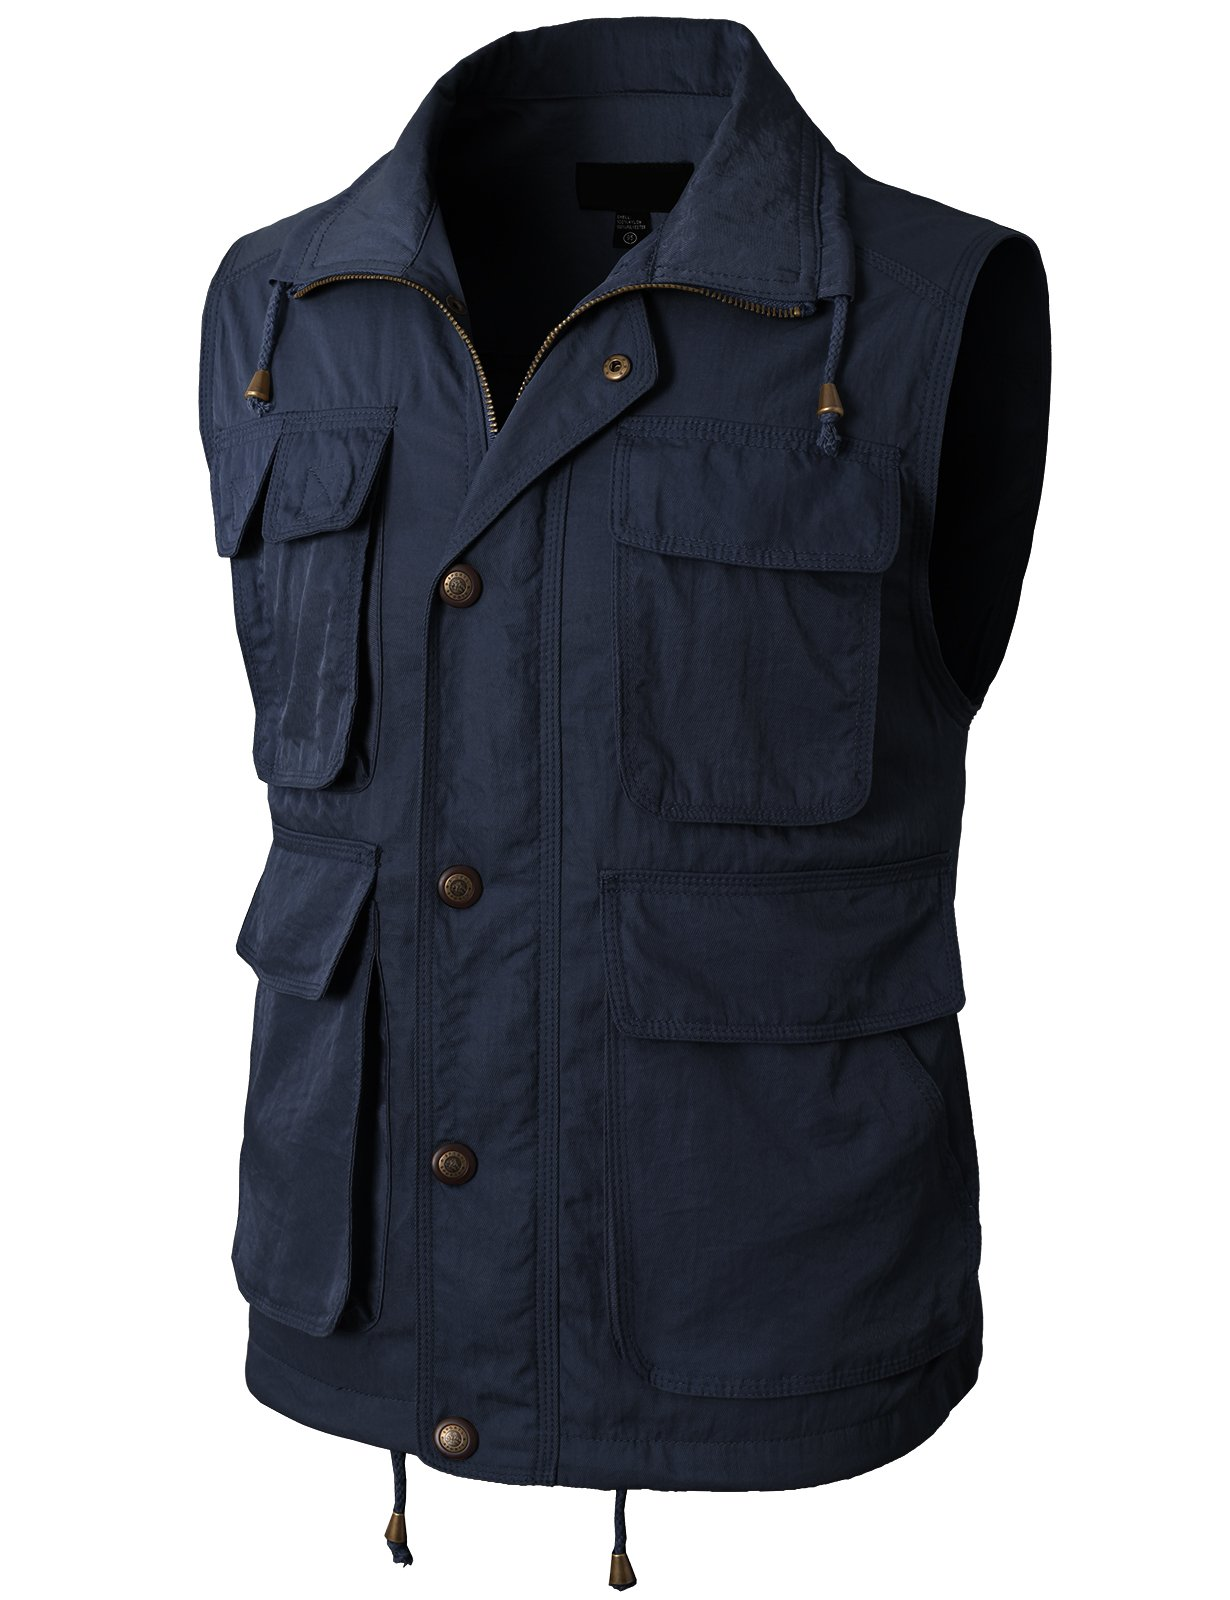 H2H Mens Active Work Utility Hunting Travels Sports Premium Vest Navy US M/Asia L (KMOV0117) by H2H